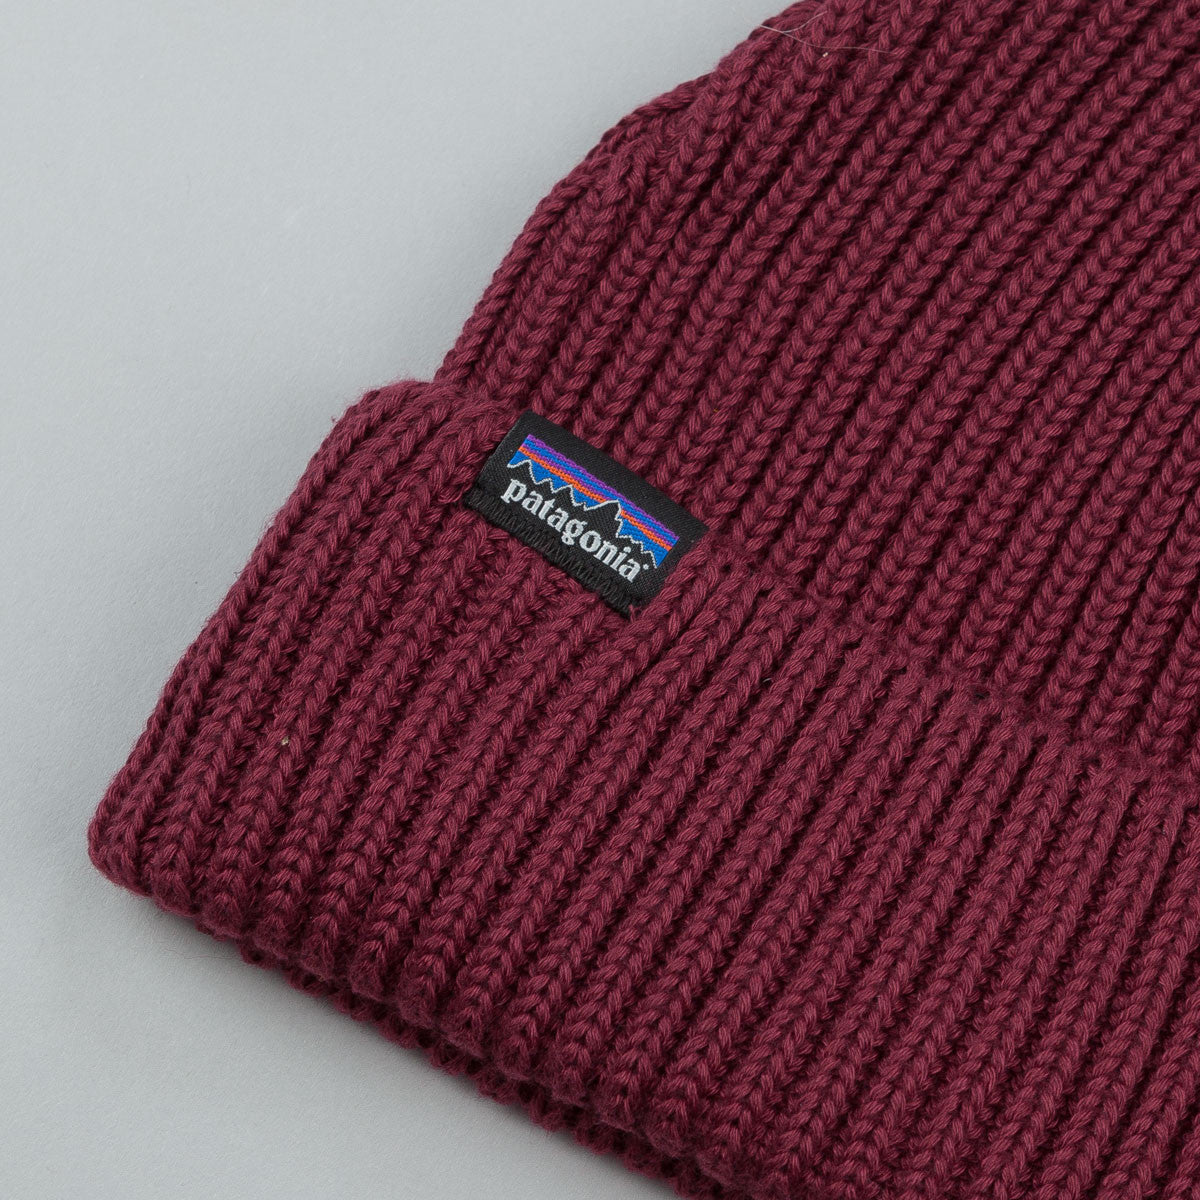 Patagonia Fisherman's Rolled Beanie - Oxblood Red